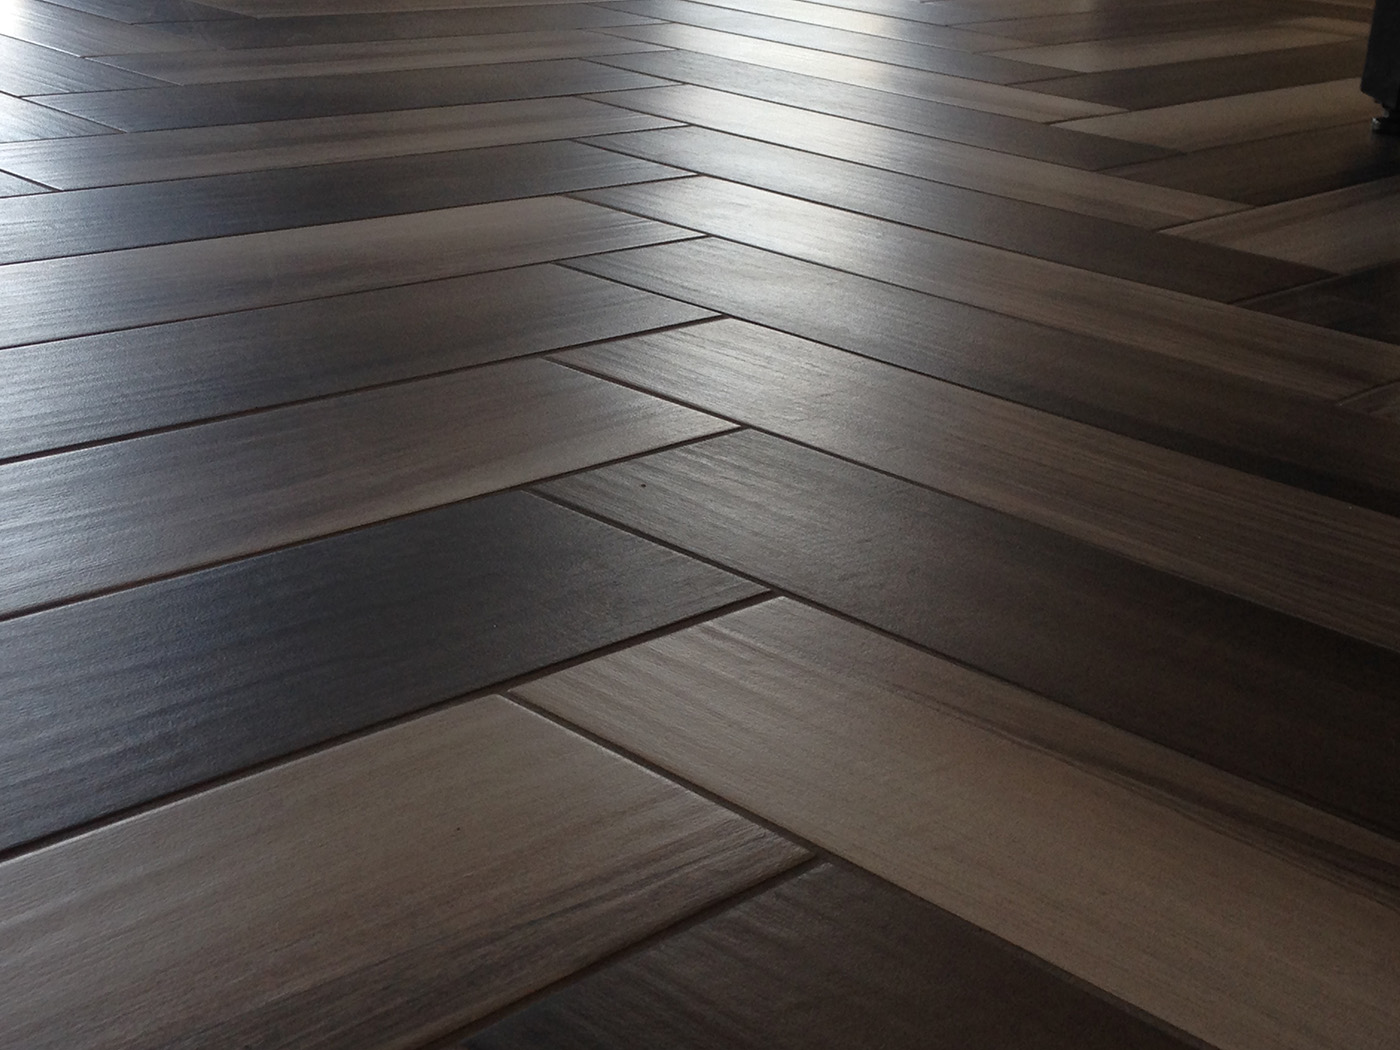 About Aaa Flooring Services Inc